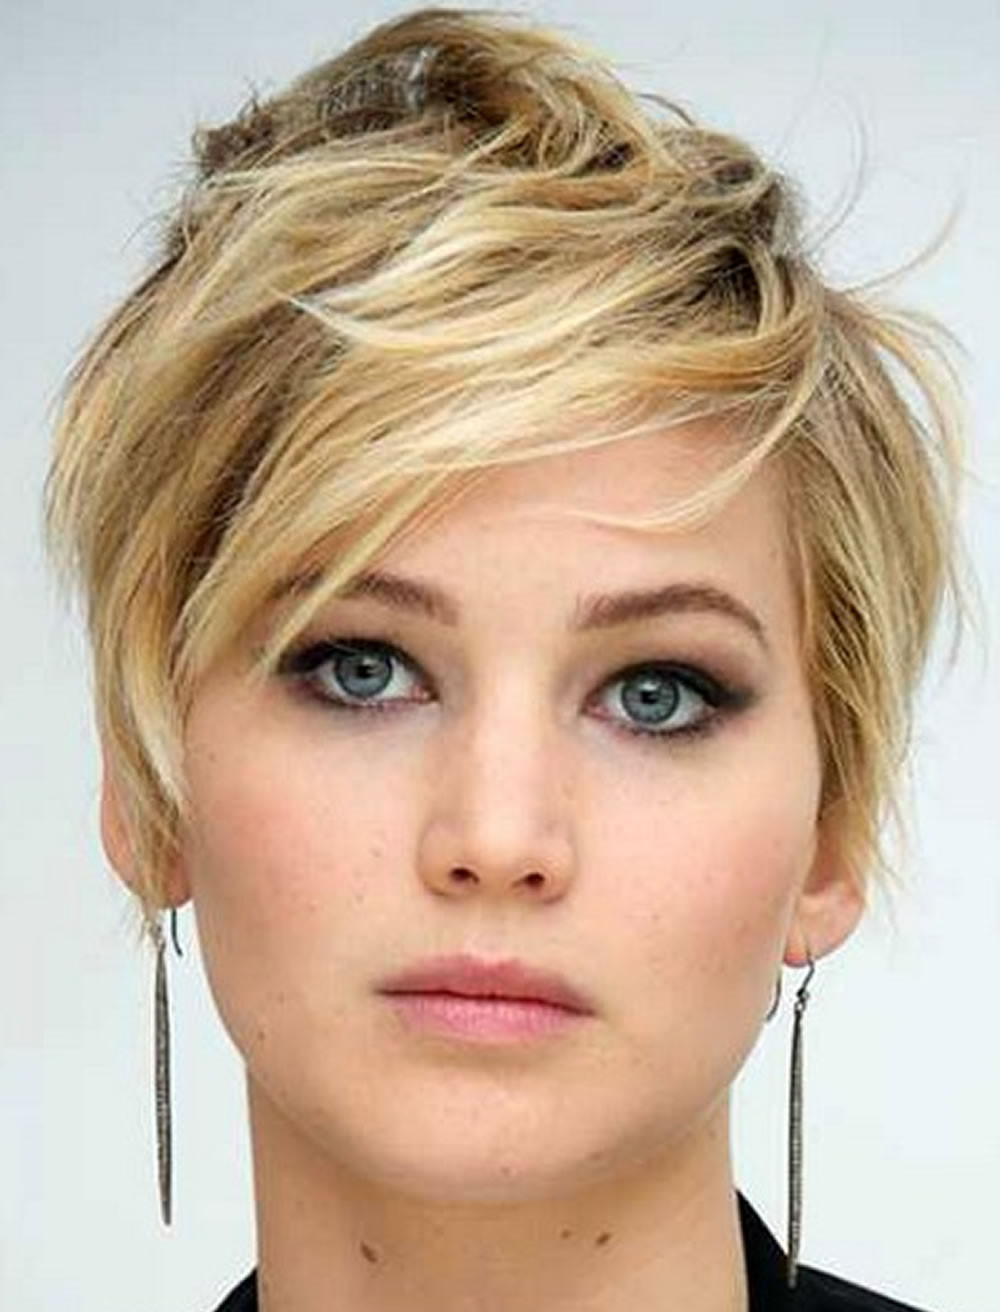 Best ideas about Cute Pixie Hairstyles . Save or Pin girls pixie haircuts Haircuts Models Ideas Now.